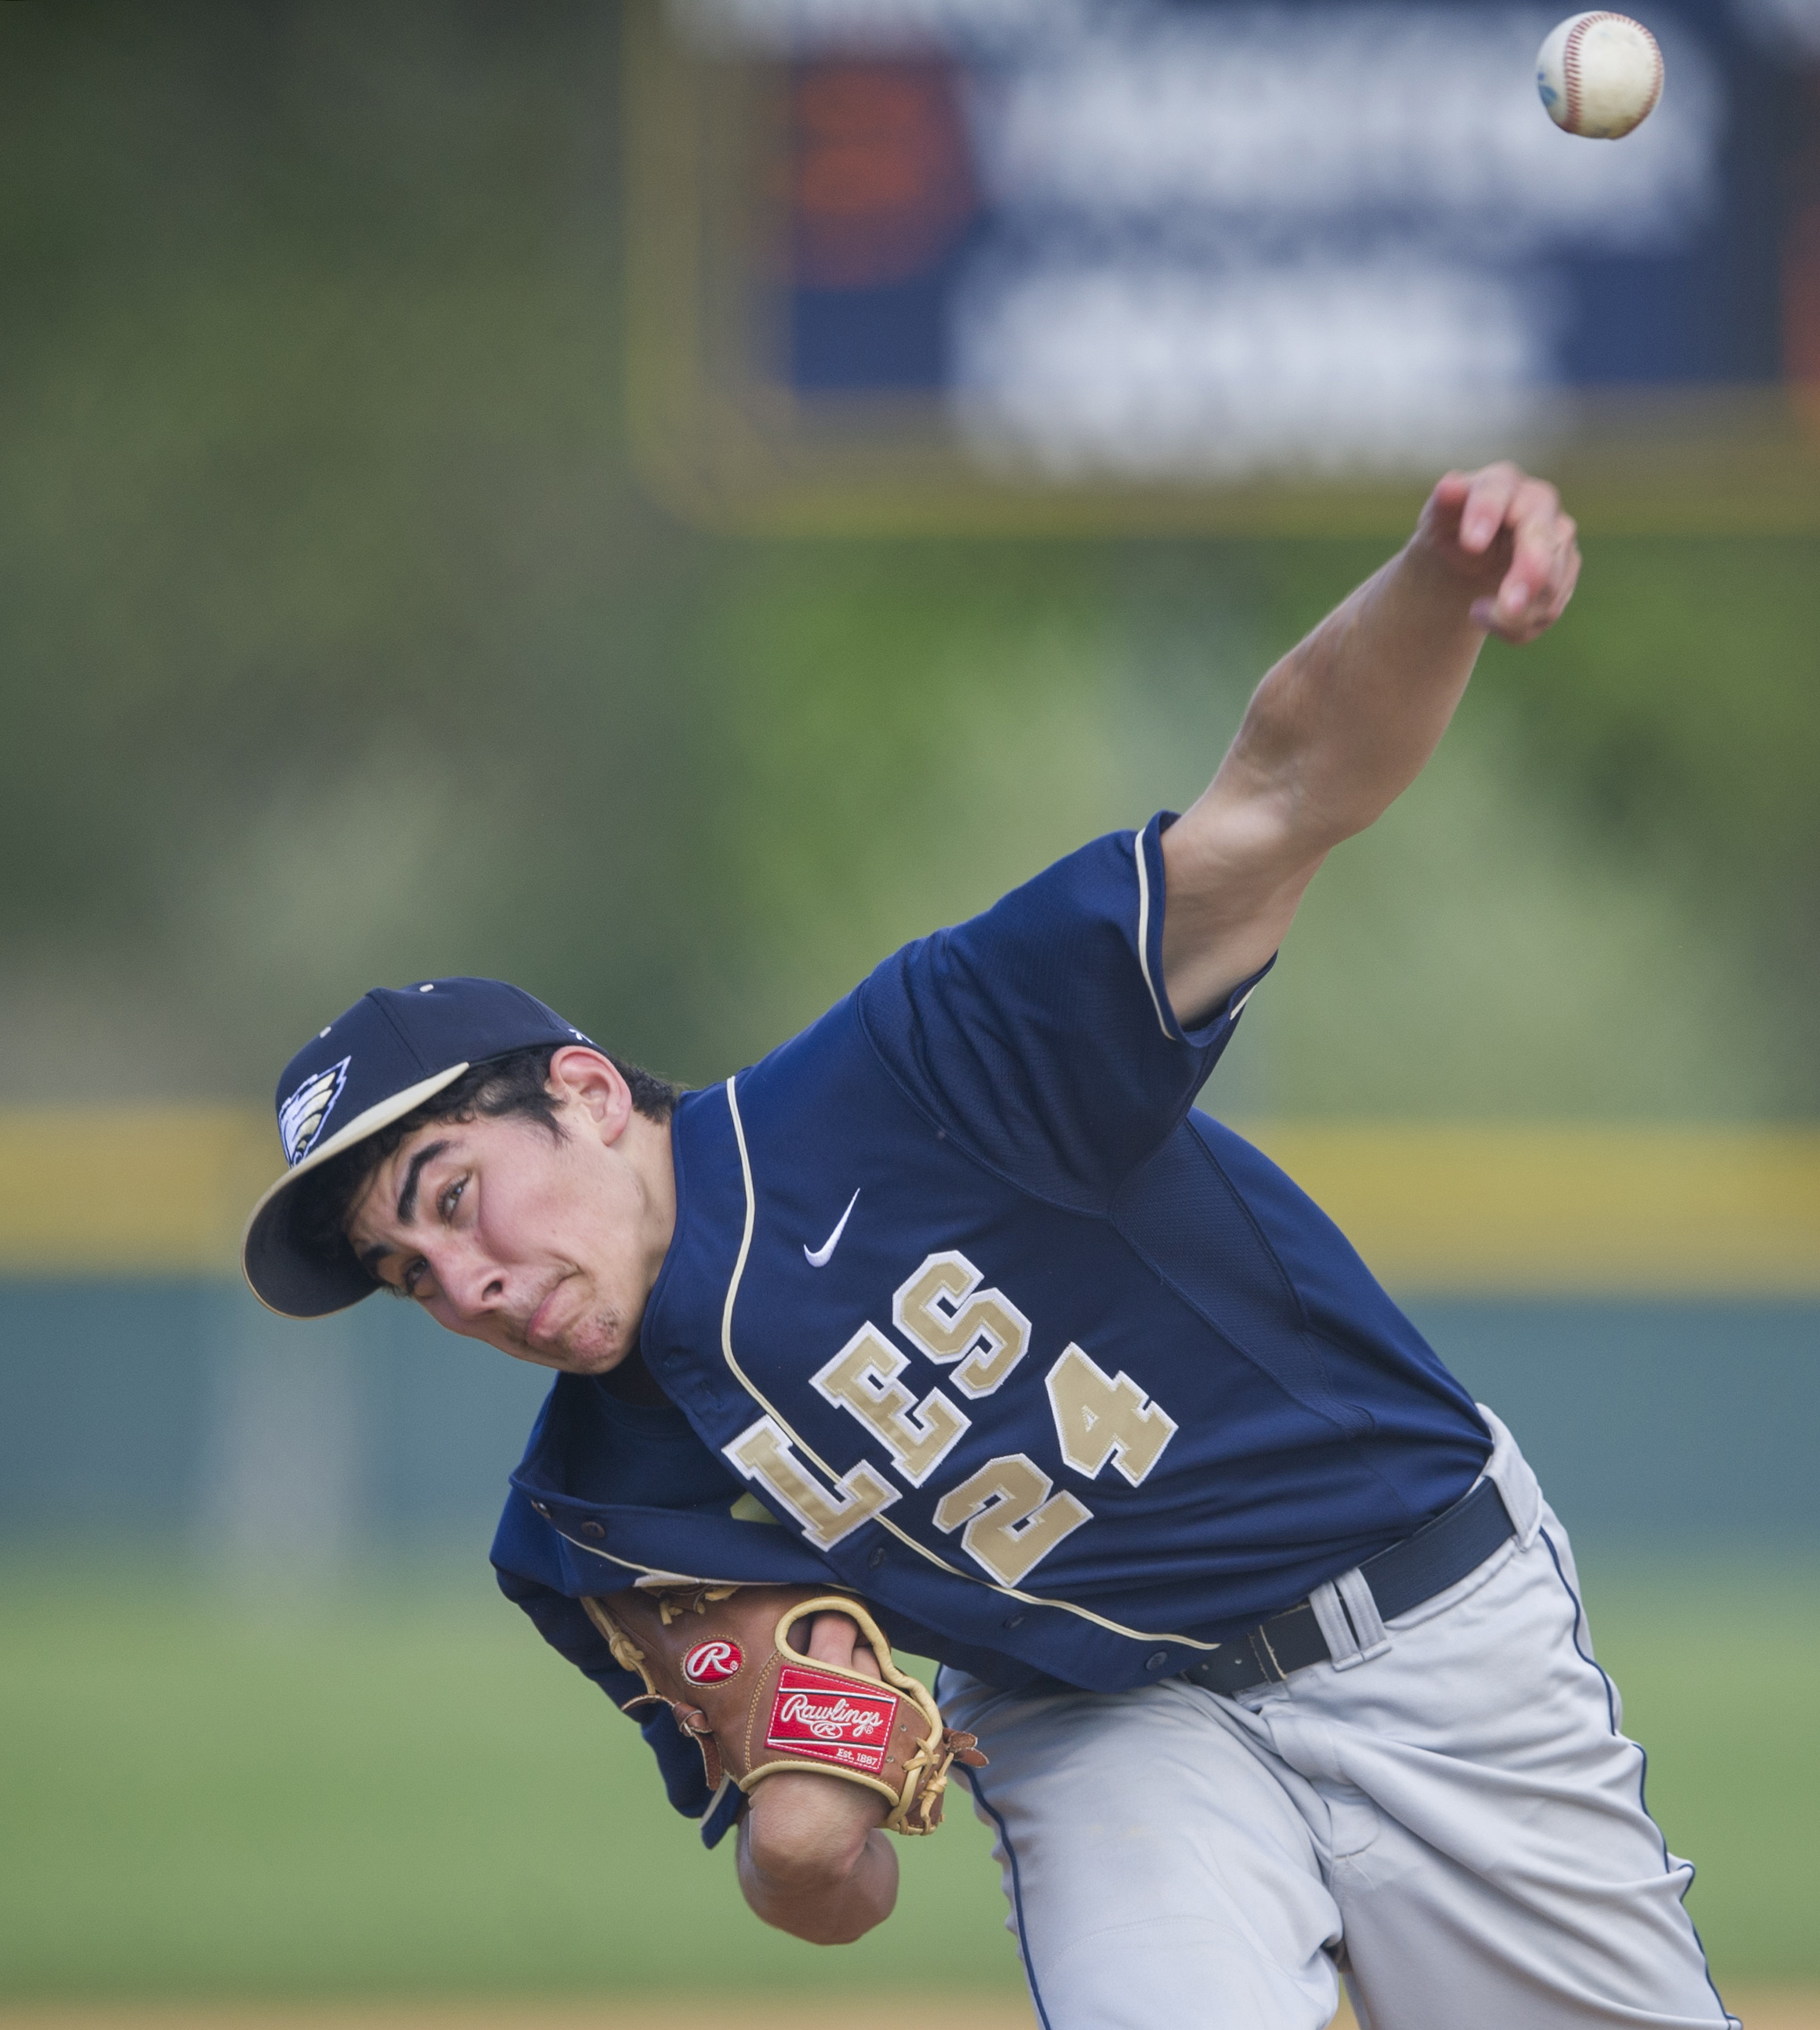 Bald Eagle Area High School pitcher sends the ball to the batter during the game against Bellefonte High School at Bald Eagle on Friday, May, 13, 2016. Bellefonte won the game 9-2.